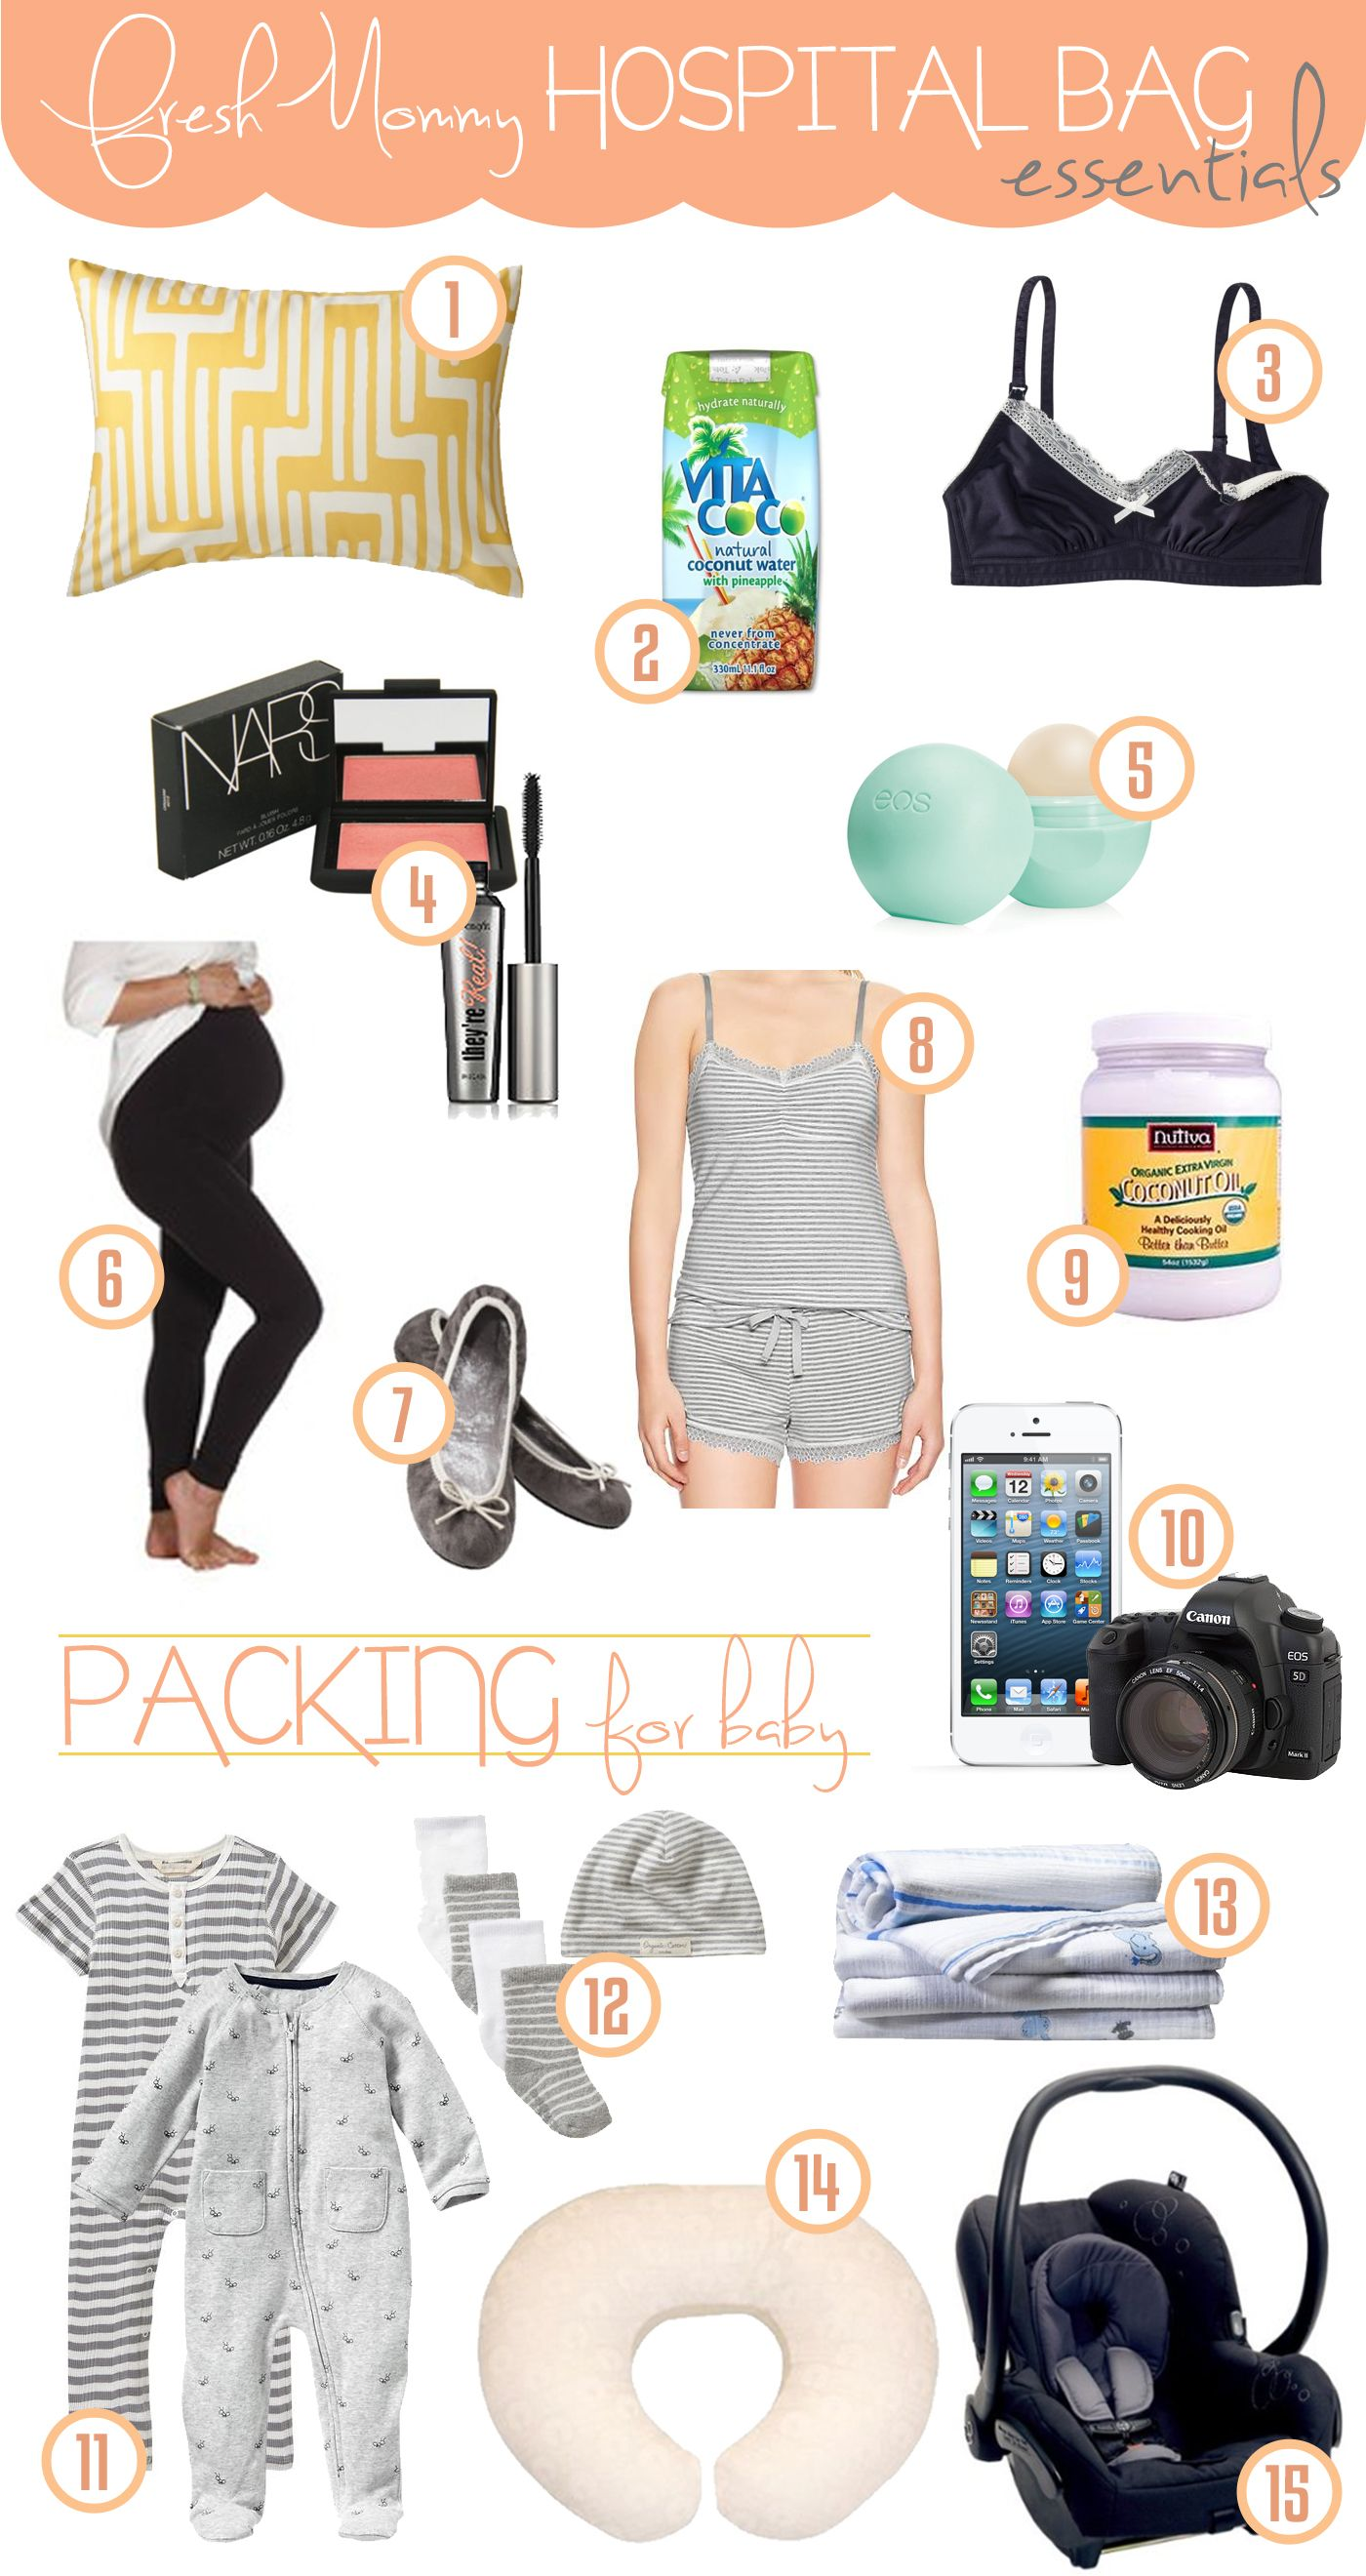 Hospital Bag Essentials Make Sure Your Go Is Ready Maternity Baby